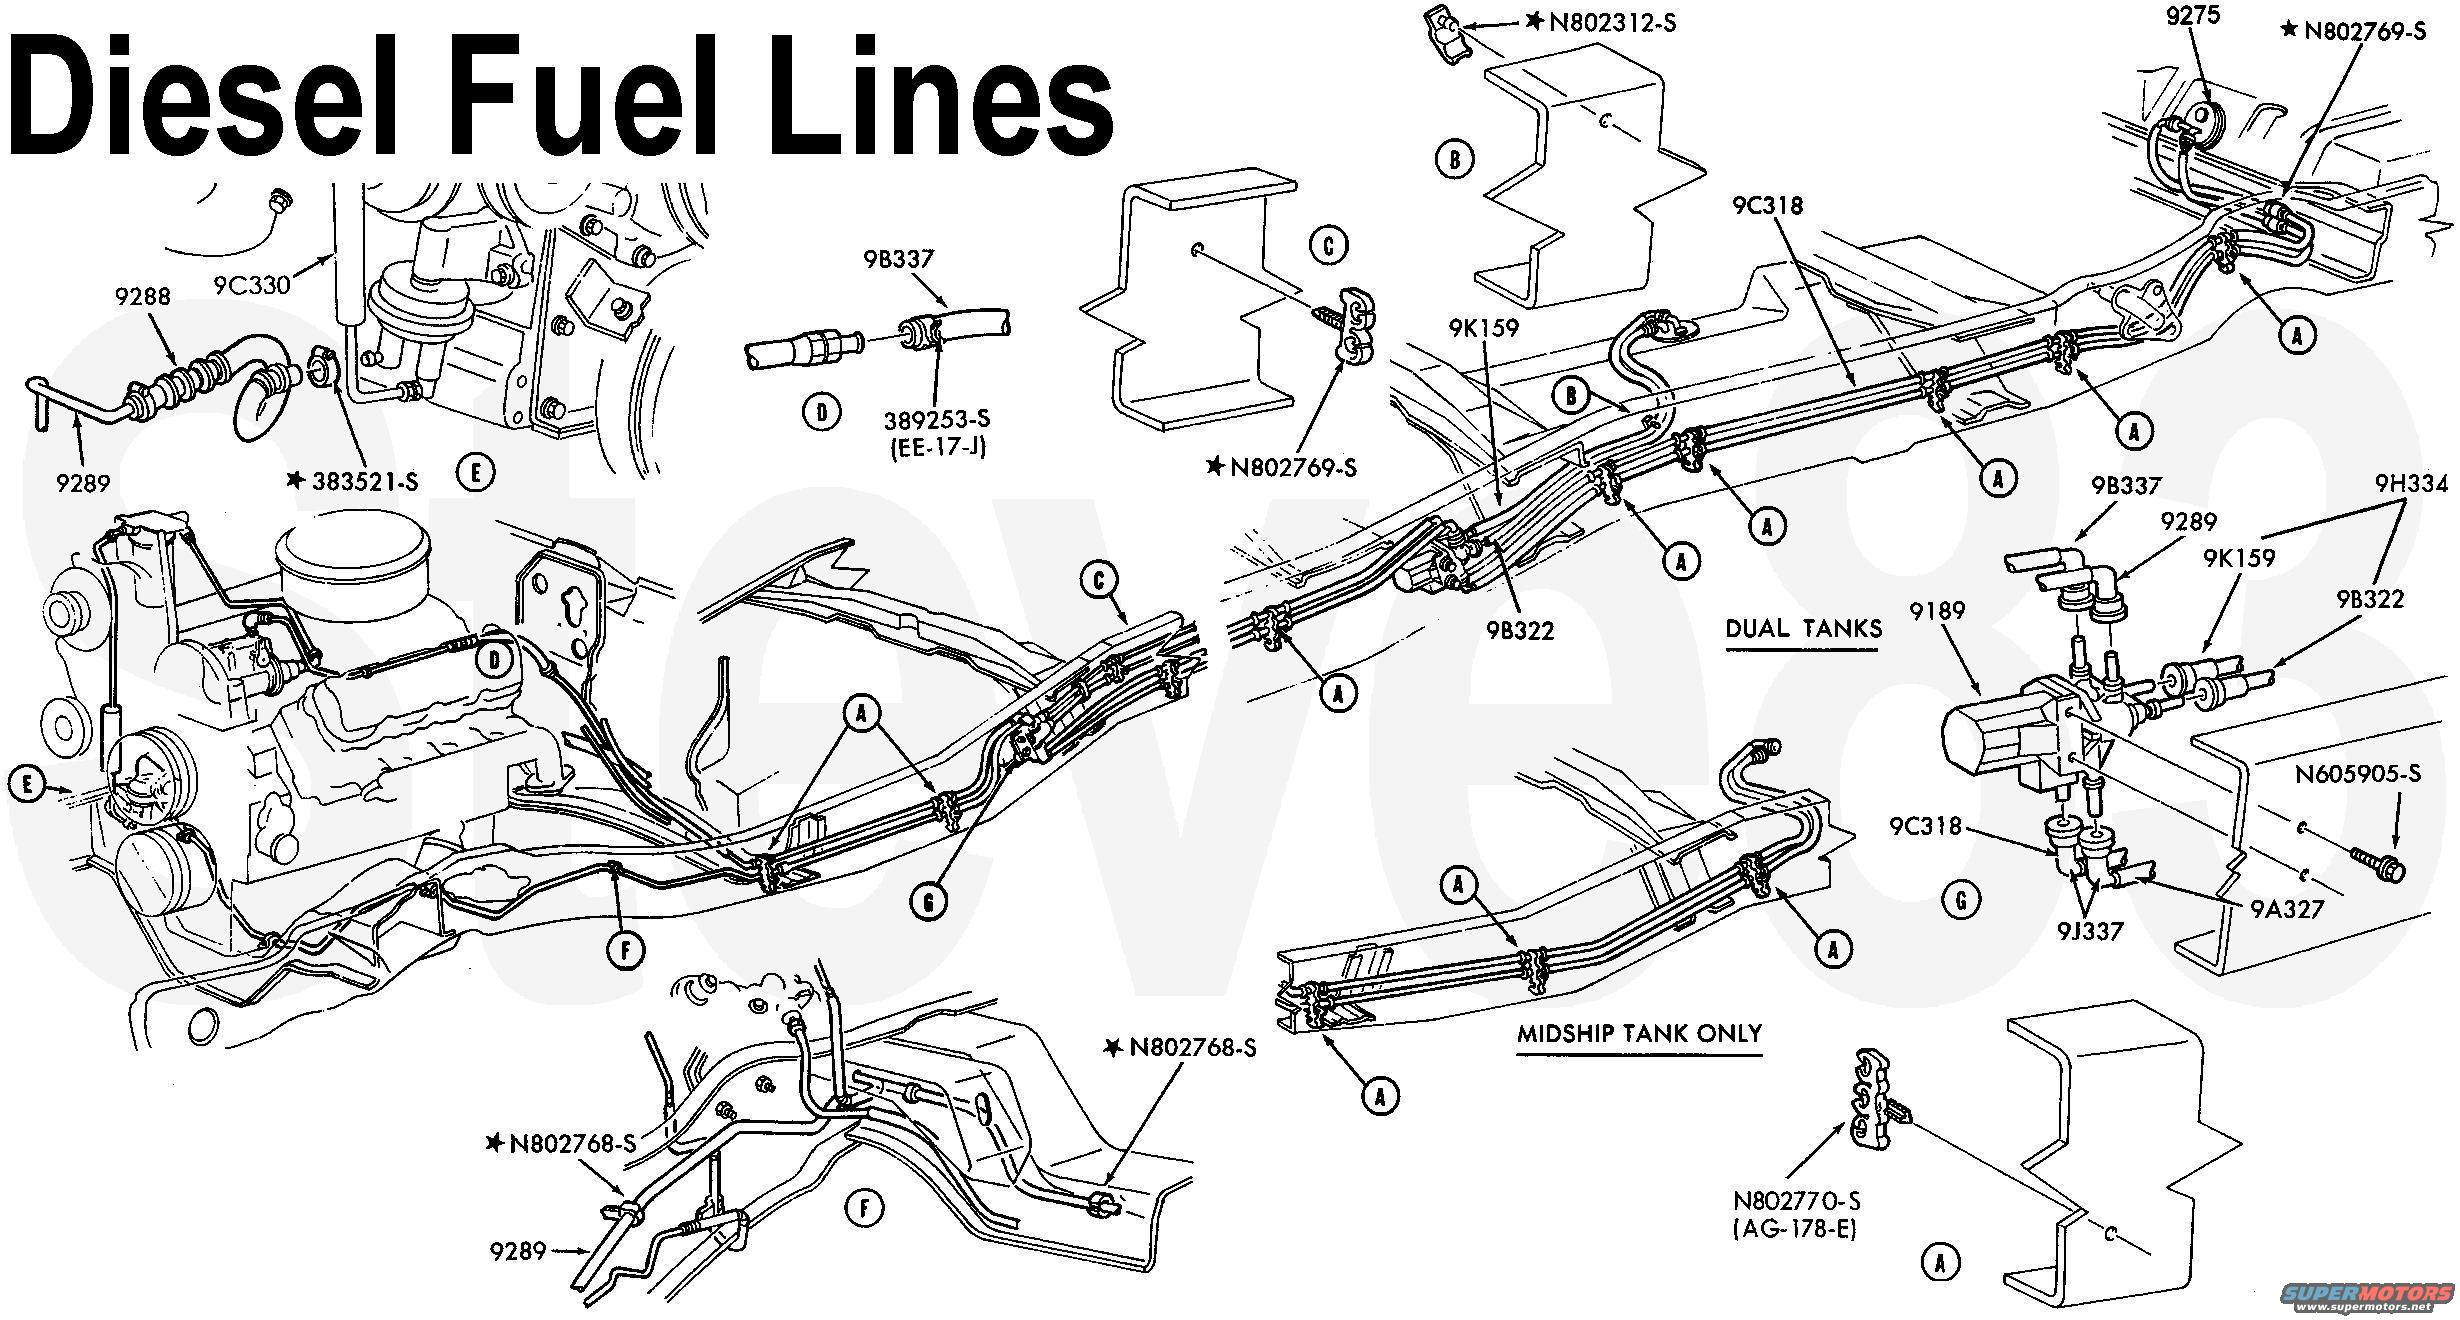 7 3 Idi Fuel Line Diagram Idm Wire Similiar Filter Keywords Housing